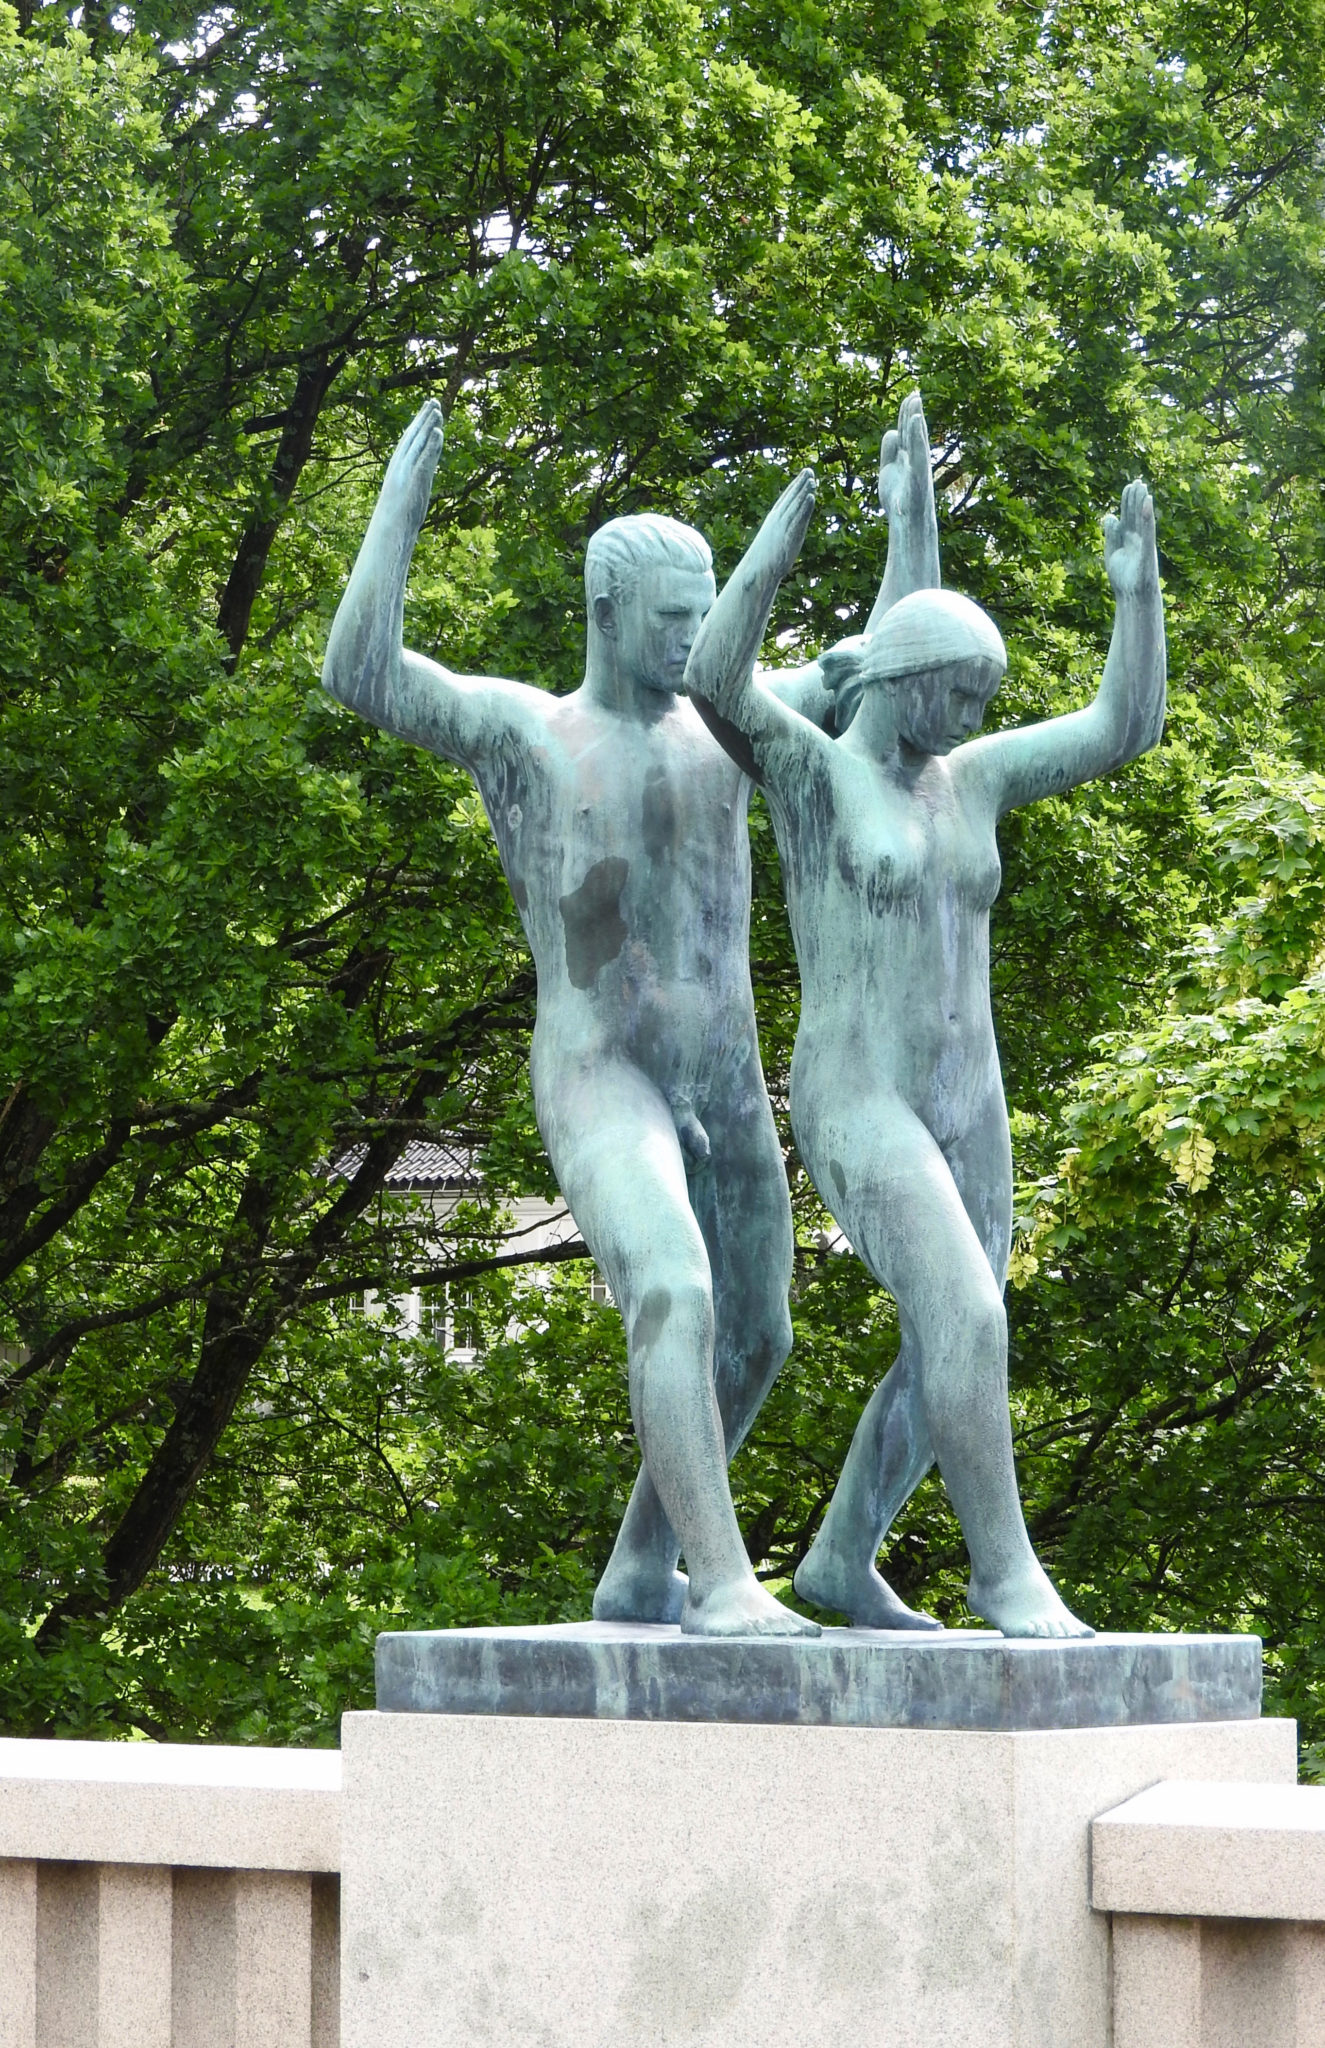 Matching sculptures of a young man and woman standing with knees bent and arms raised